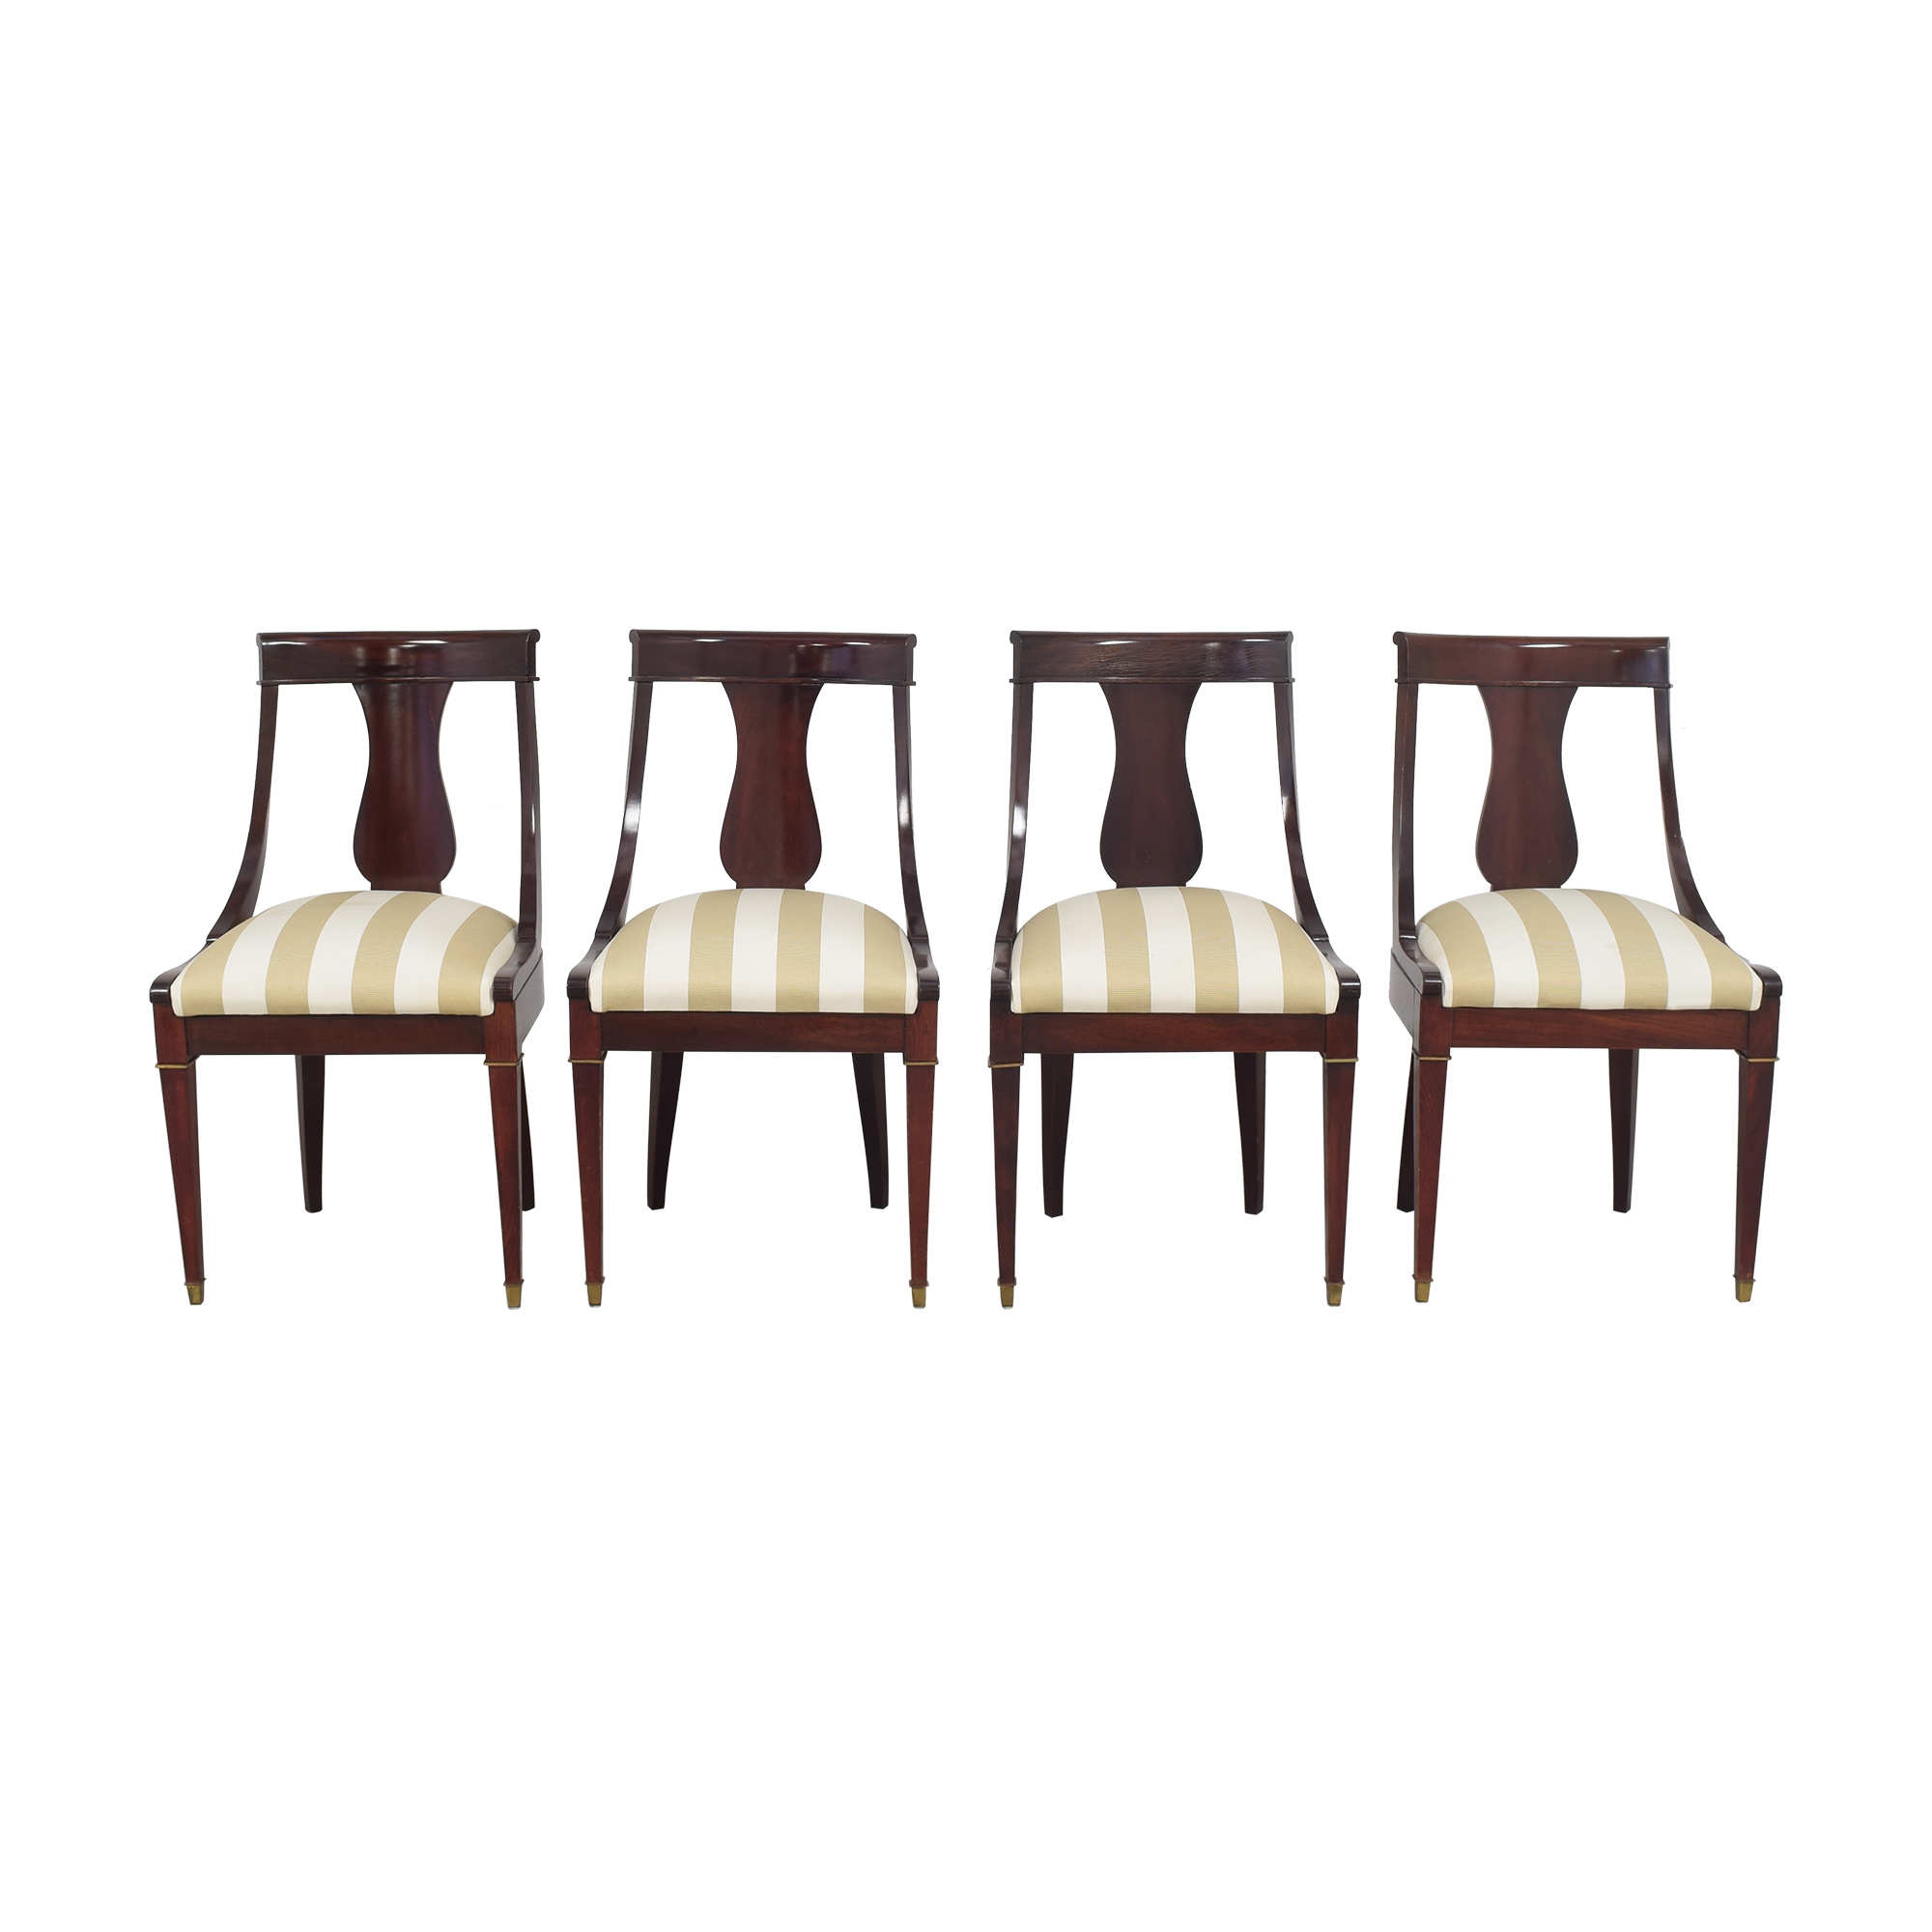 Vintage Dining Side Chairs for sale